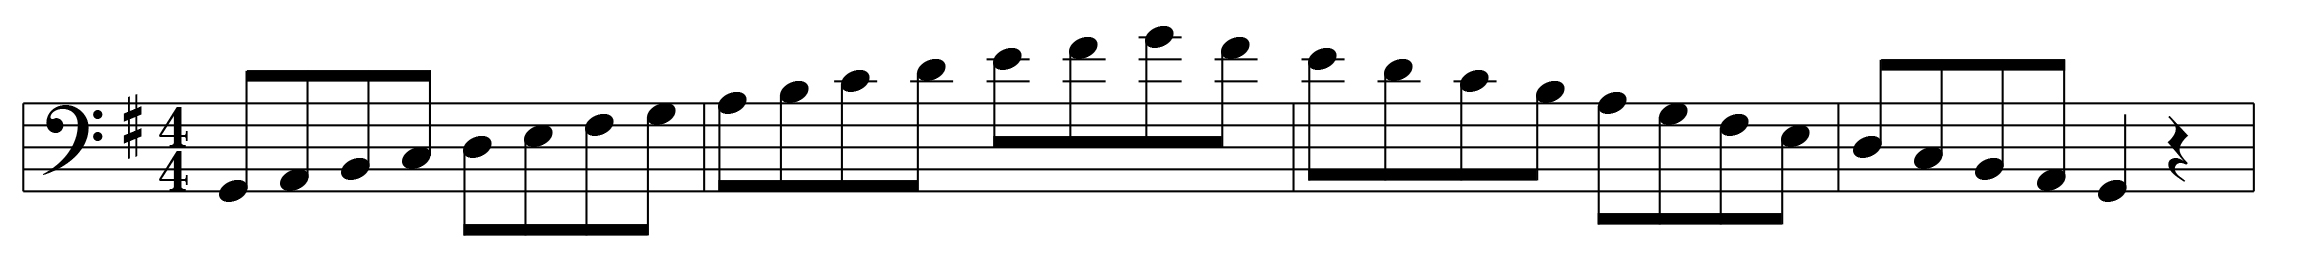 G Major Scale Left Hand